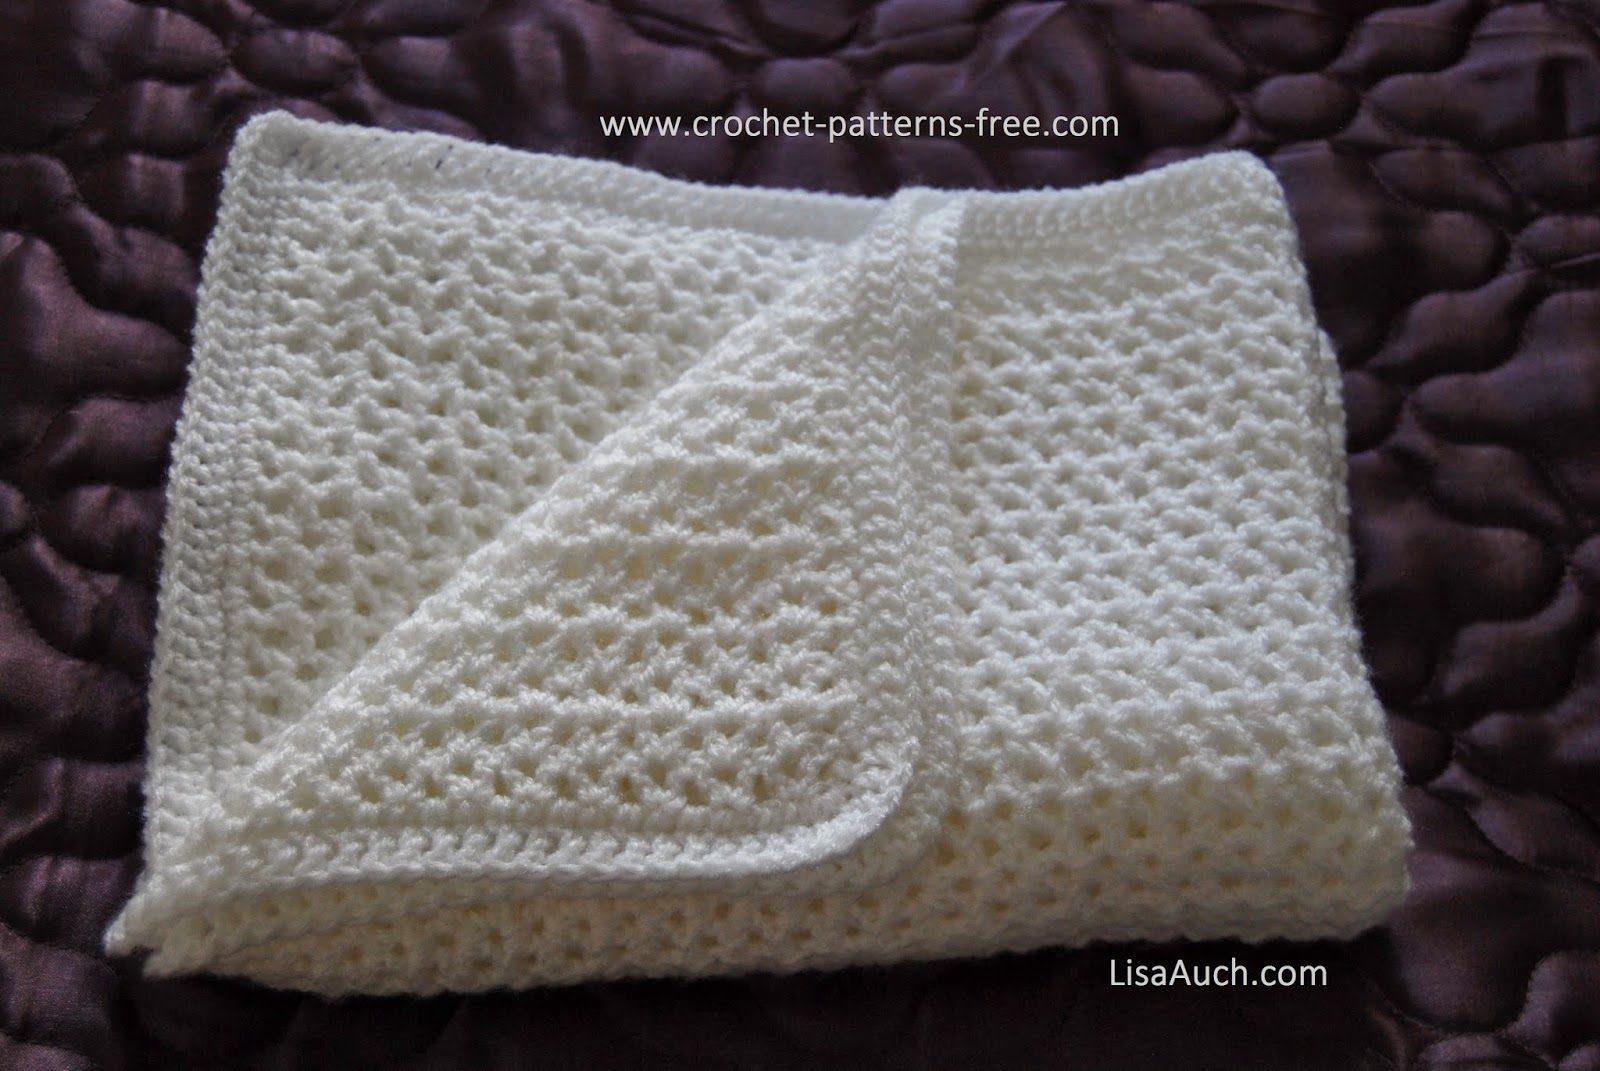 How to Crochet an Easy Baby Blanket Ideal for Beginners (Free ...